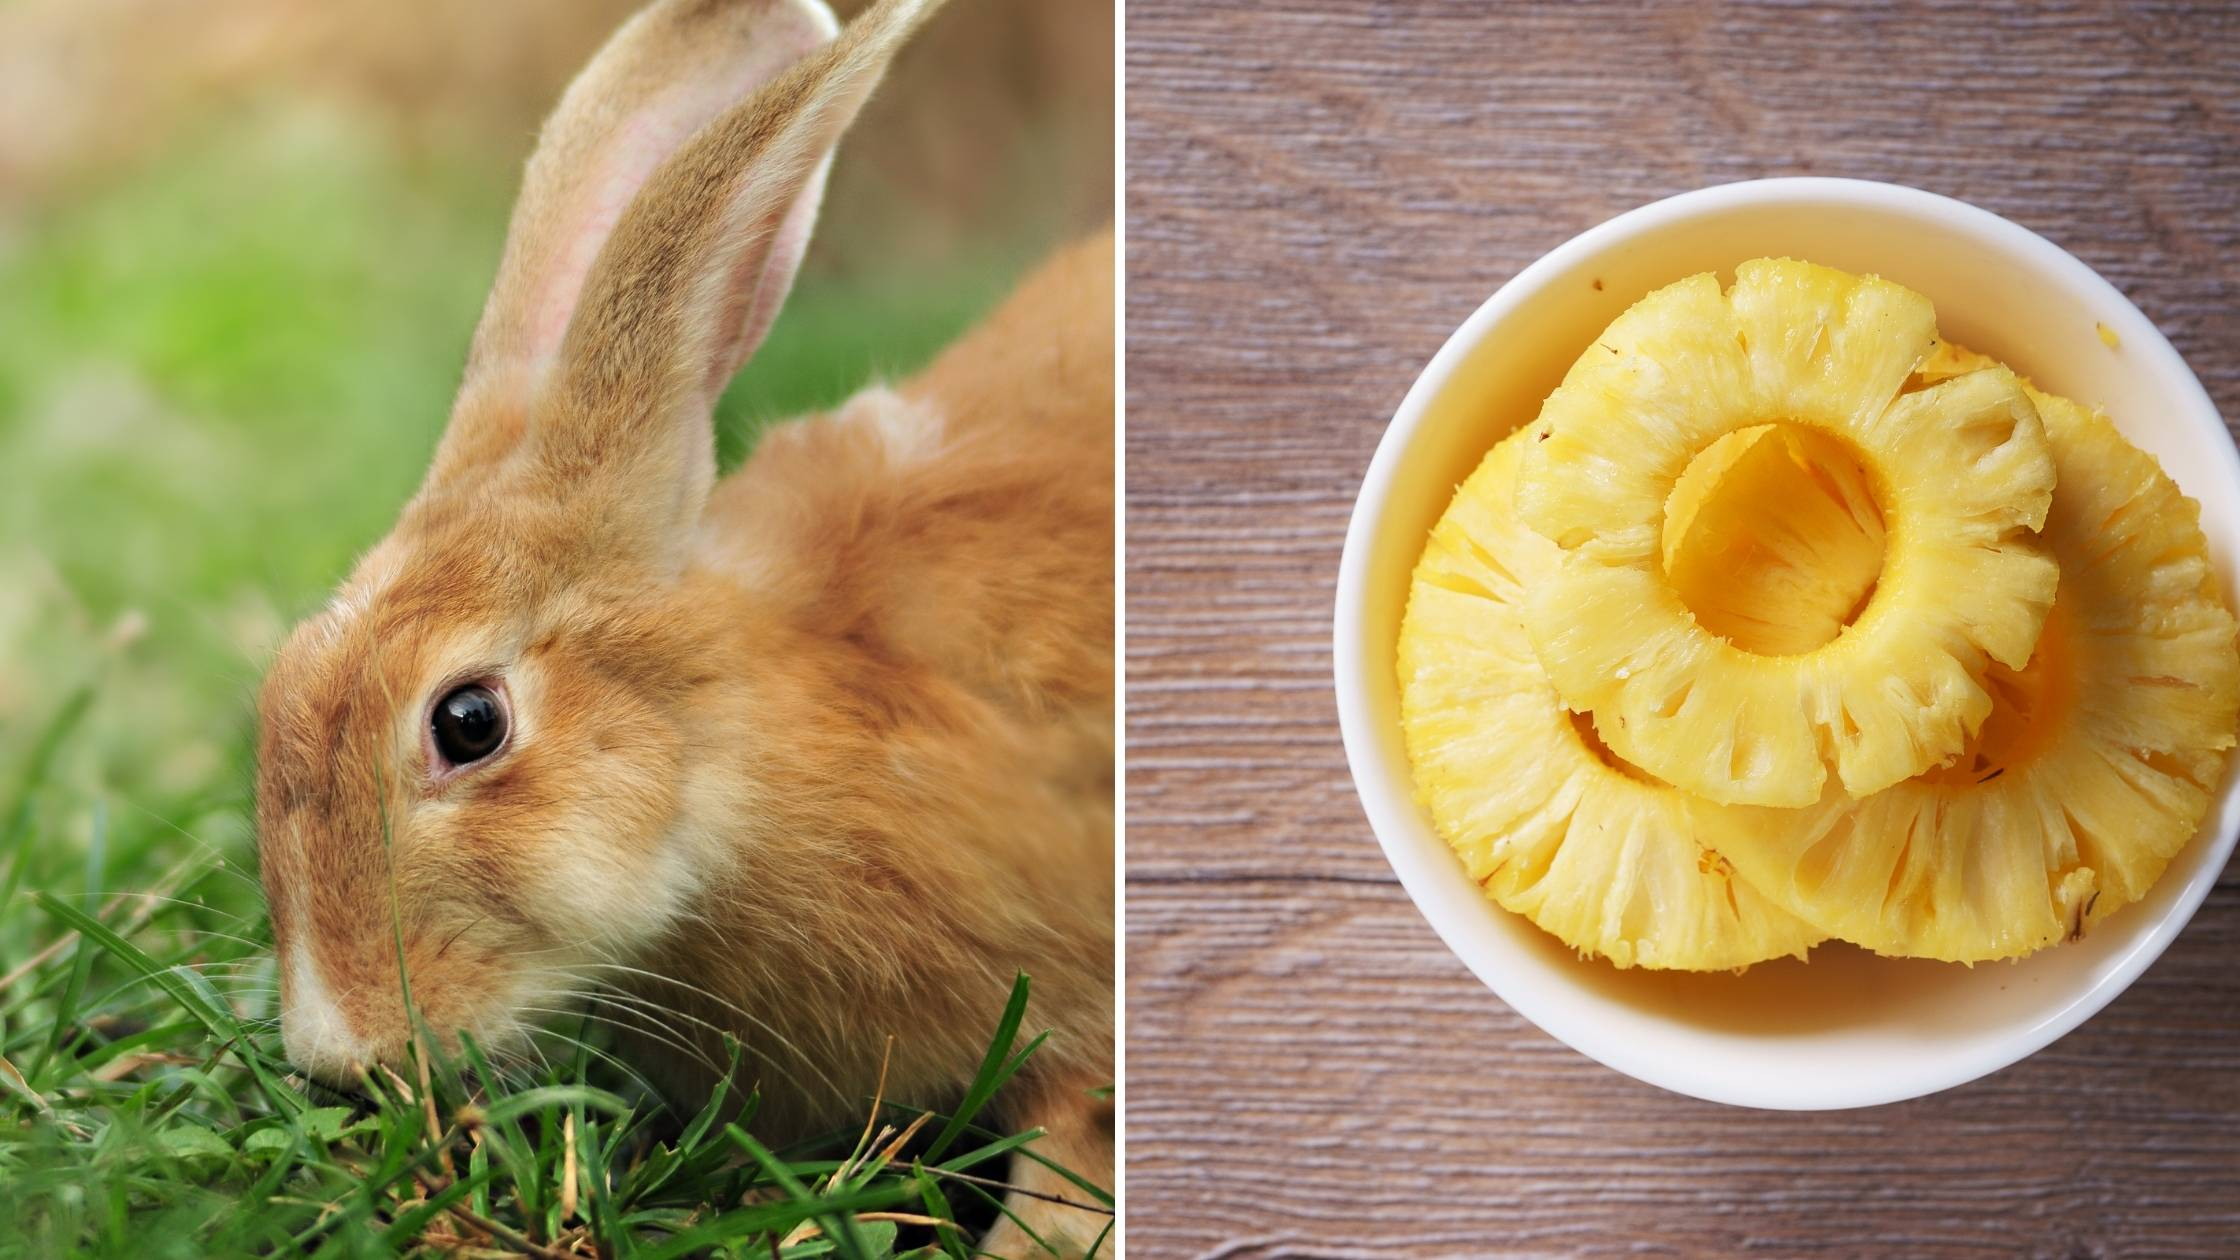 can bunnies eat pineapple